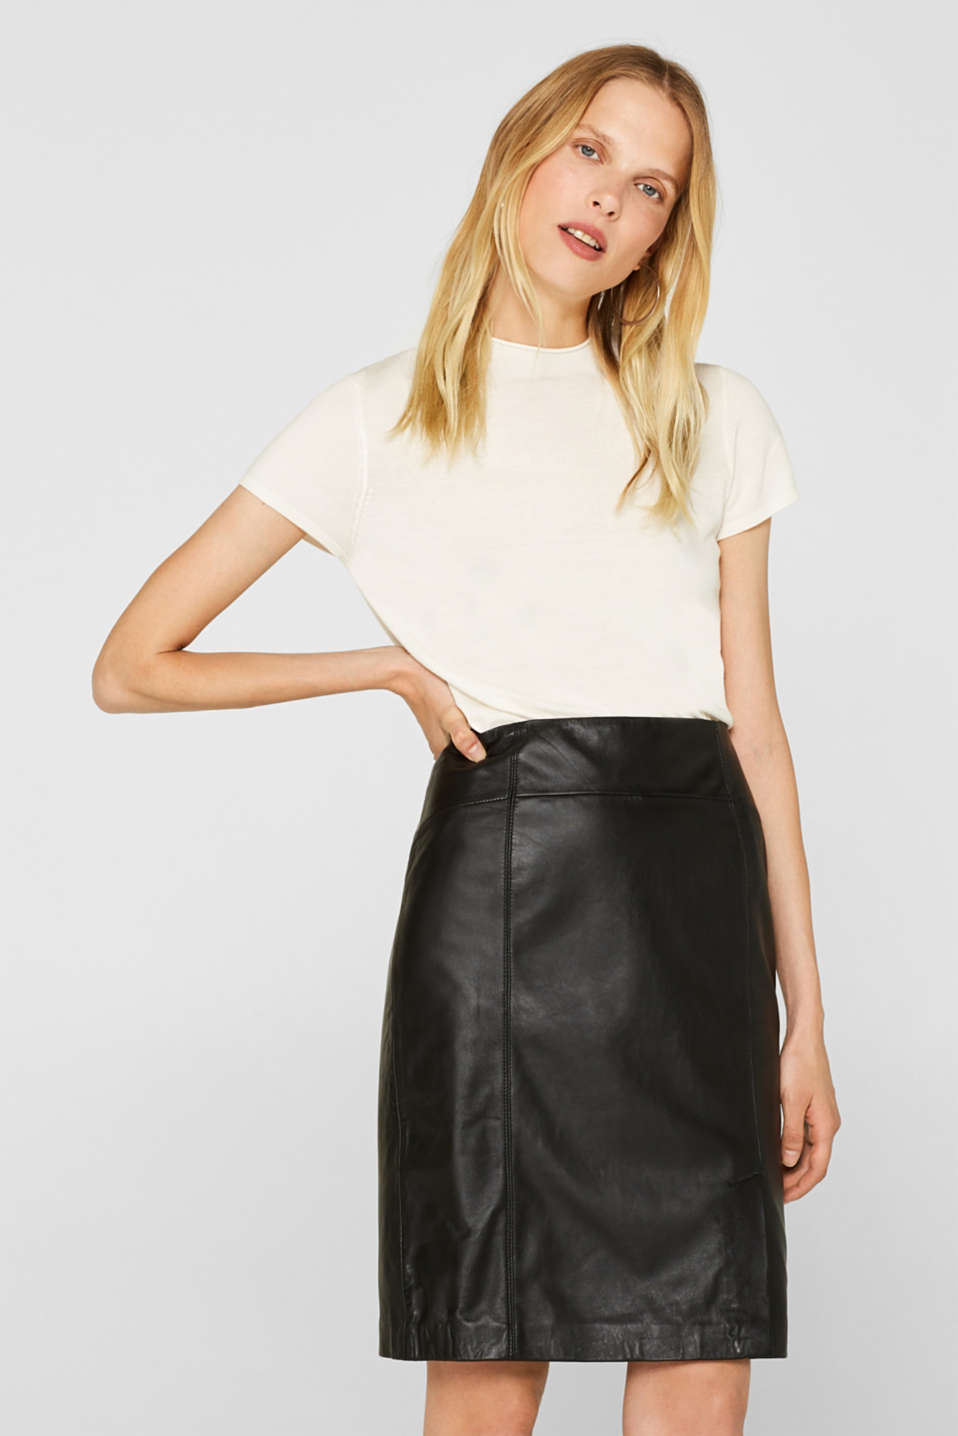 Esprit - Made of leather: Pencil skirt with a lateral slit on the side